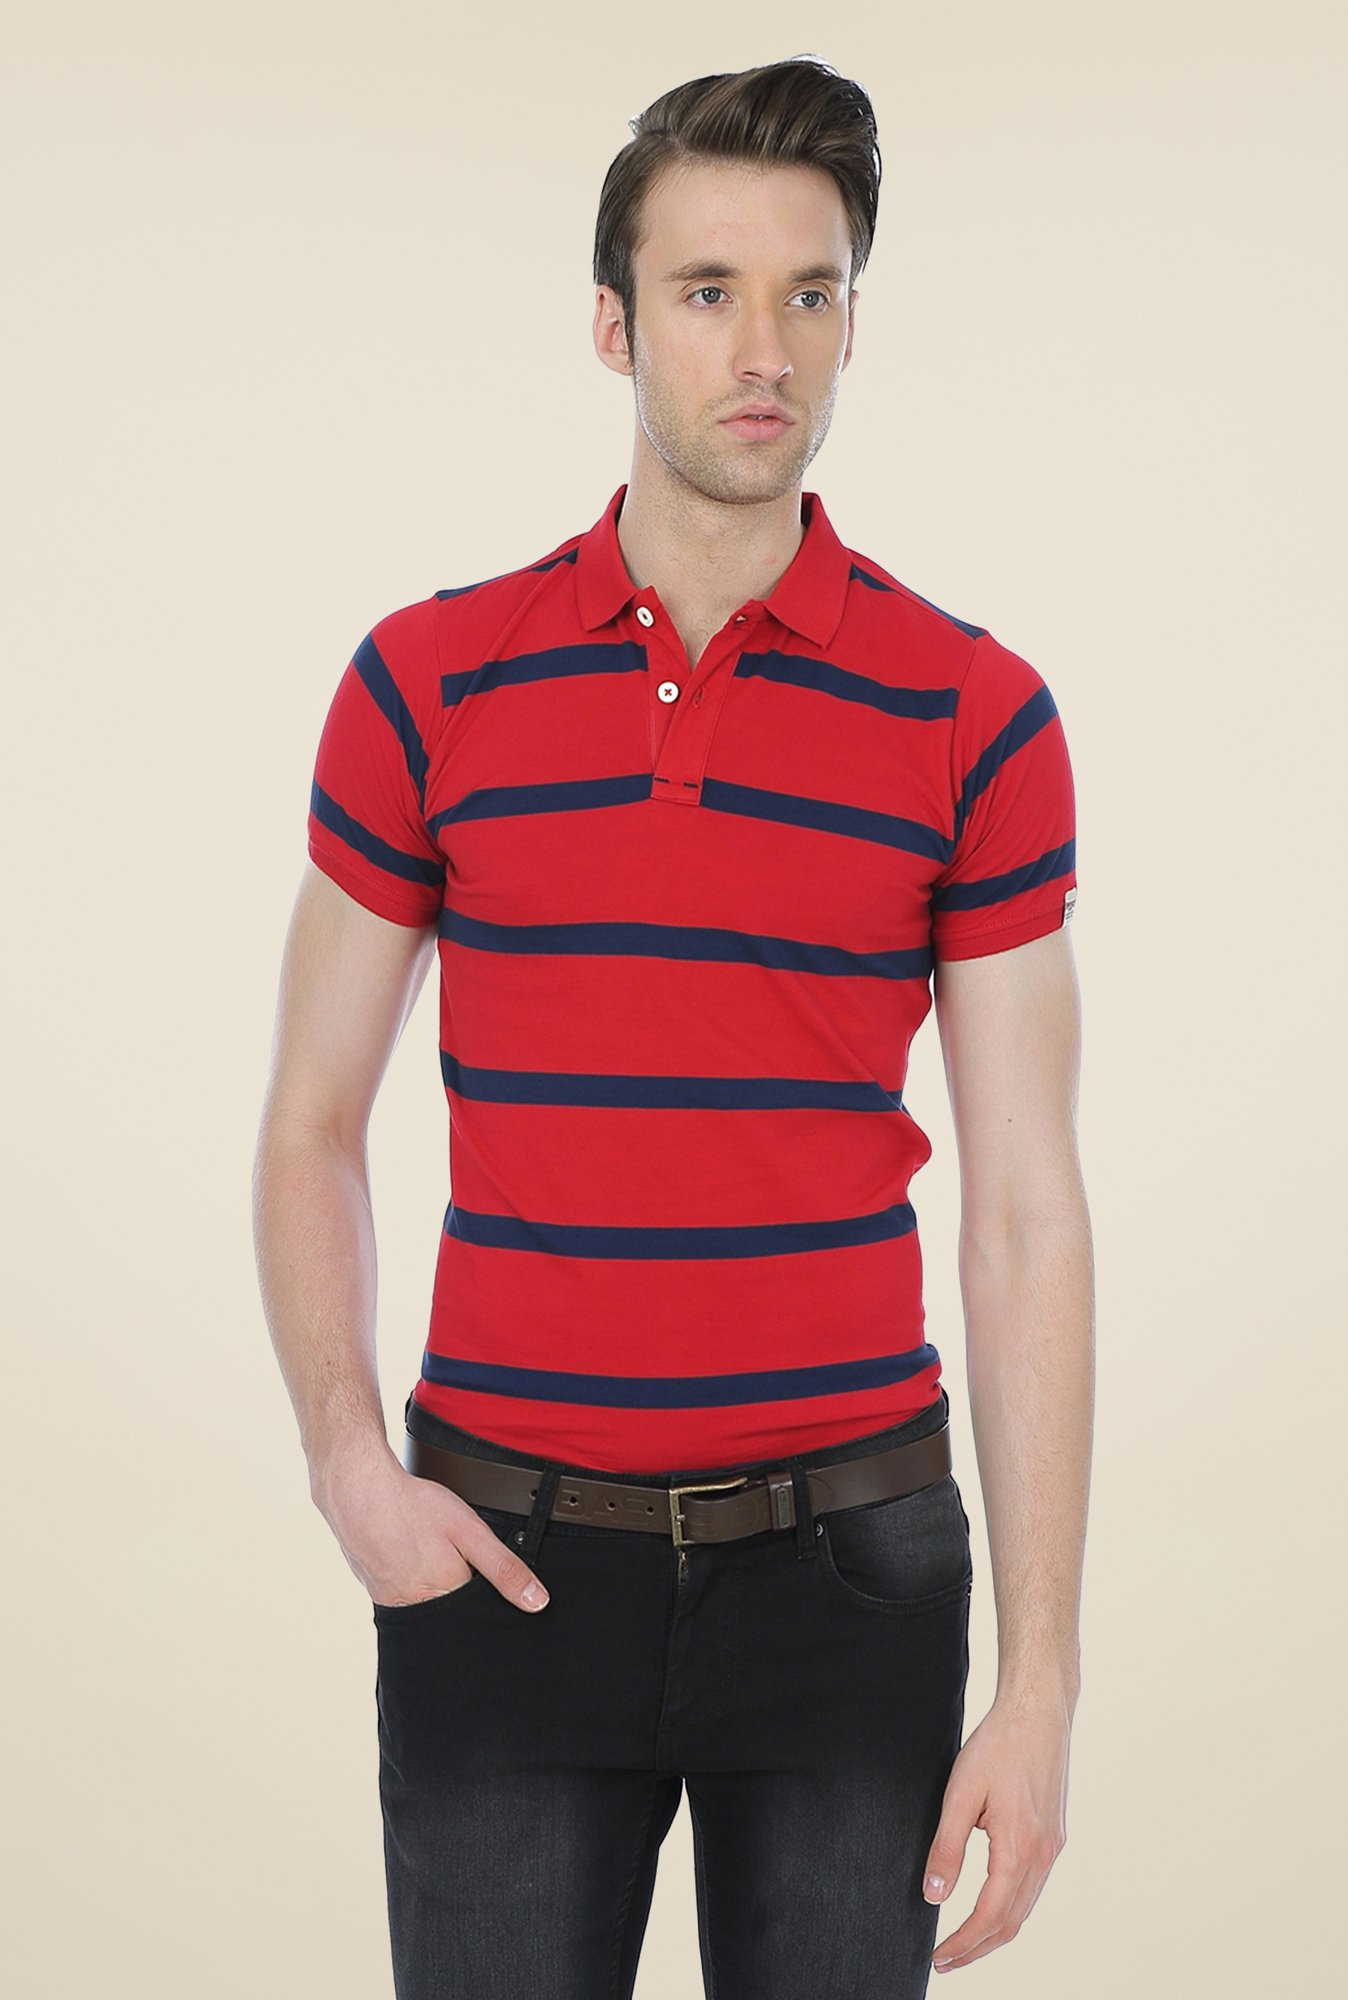 Basics Red Striped Cotton Short Sleeve Polo T-shirt